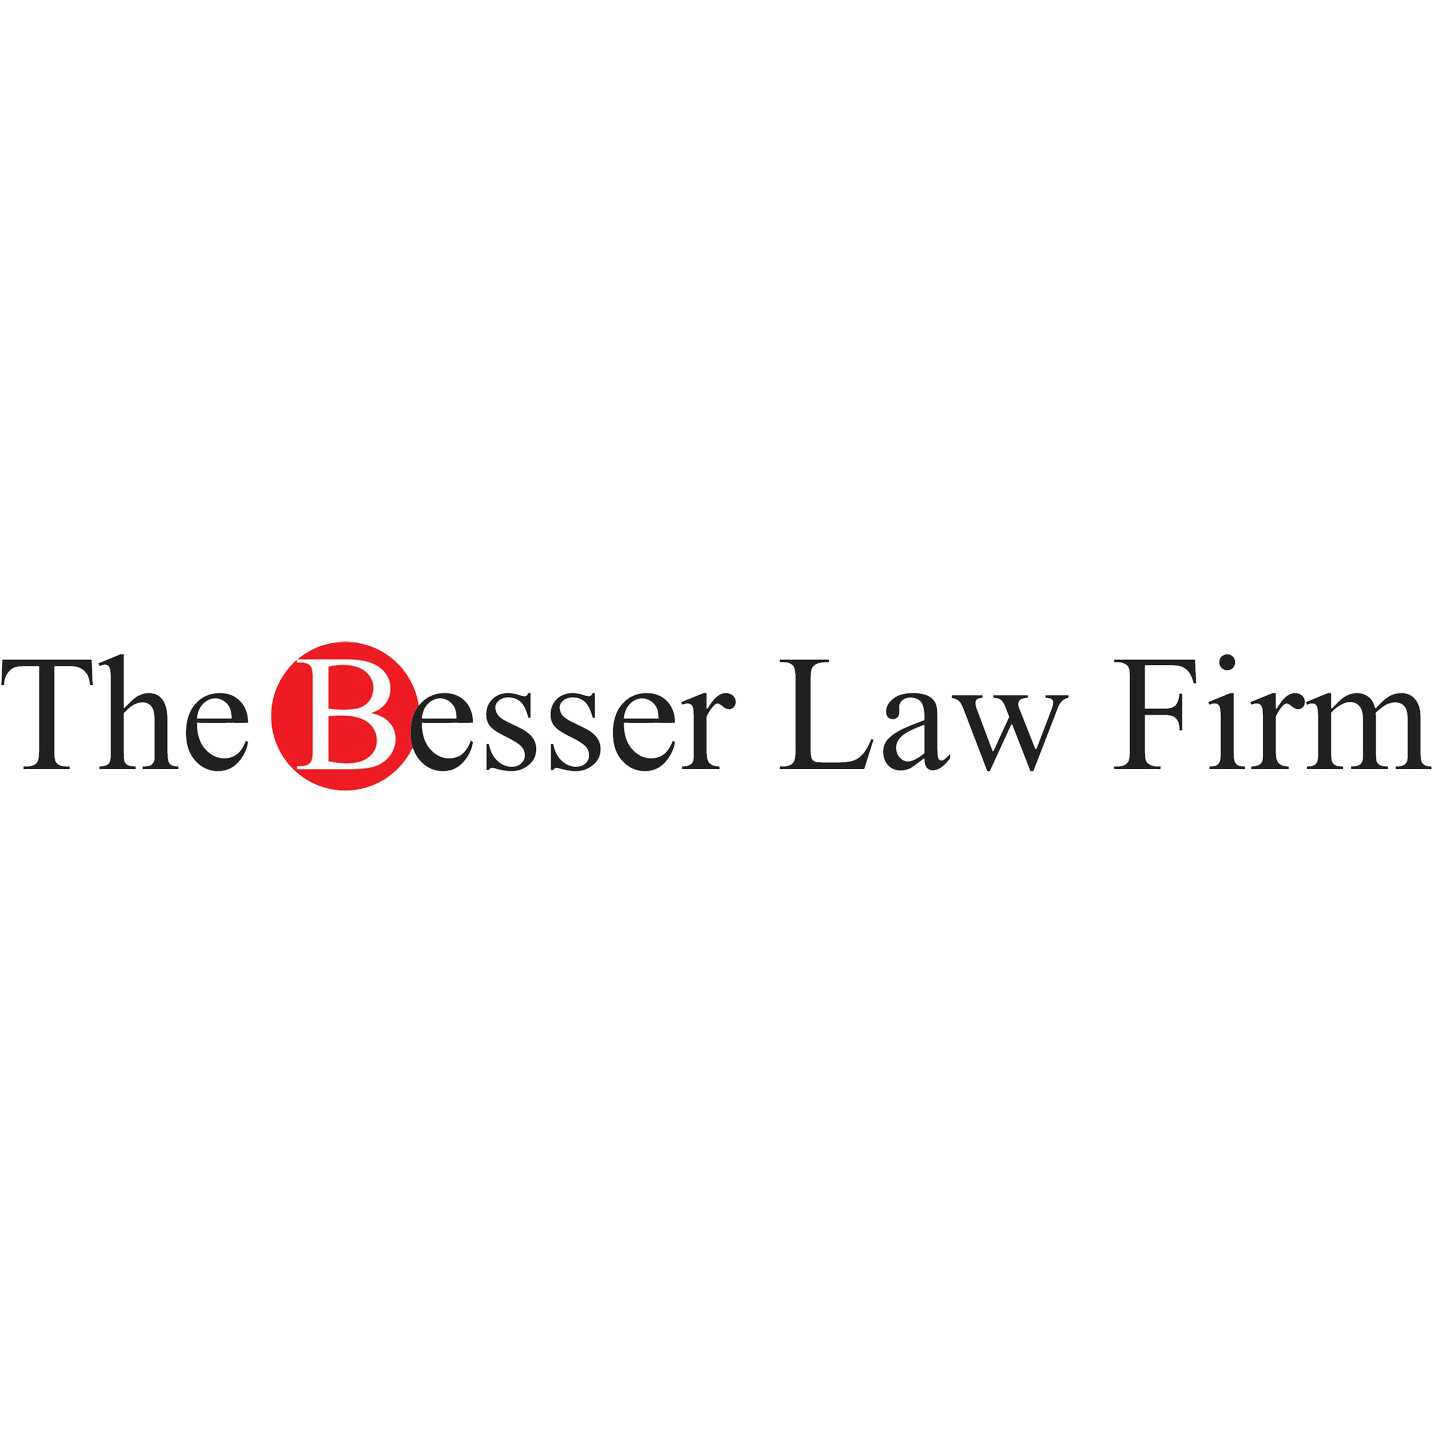 photo of The Besser Law Firm